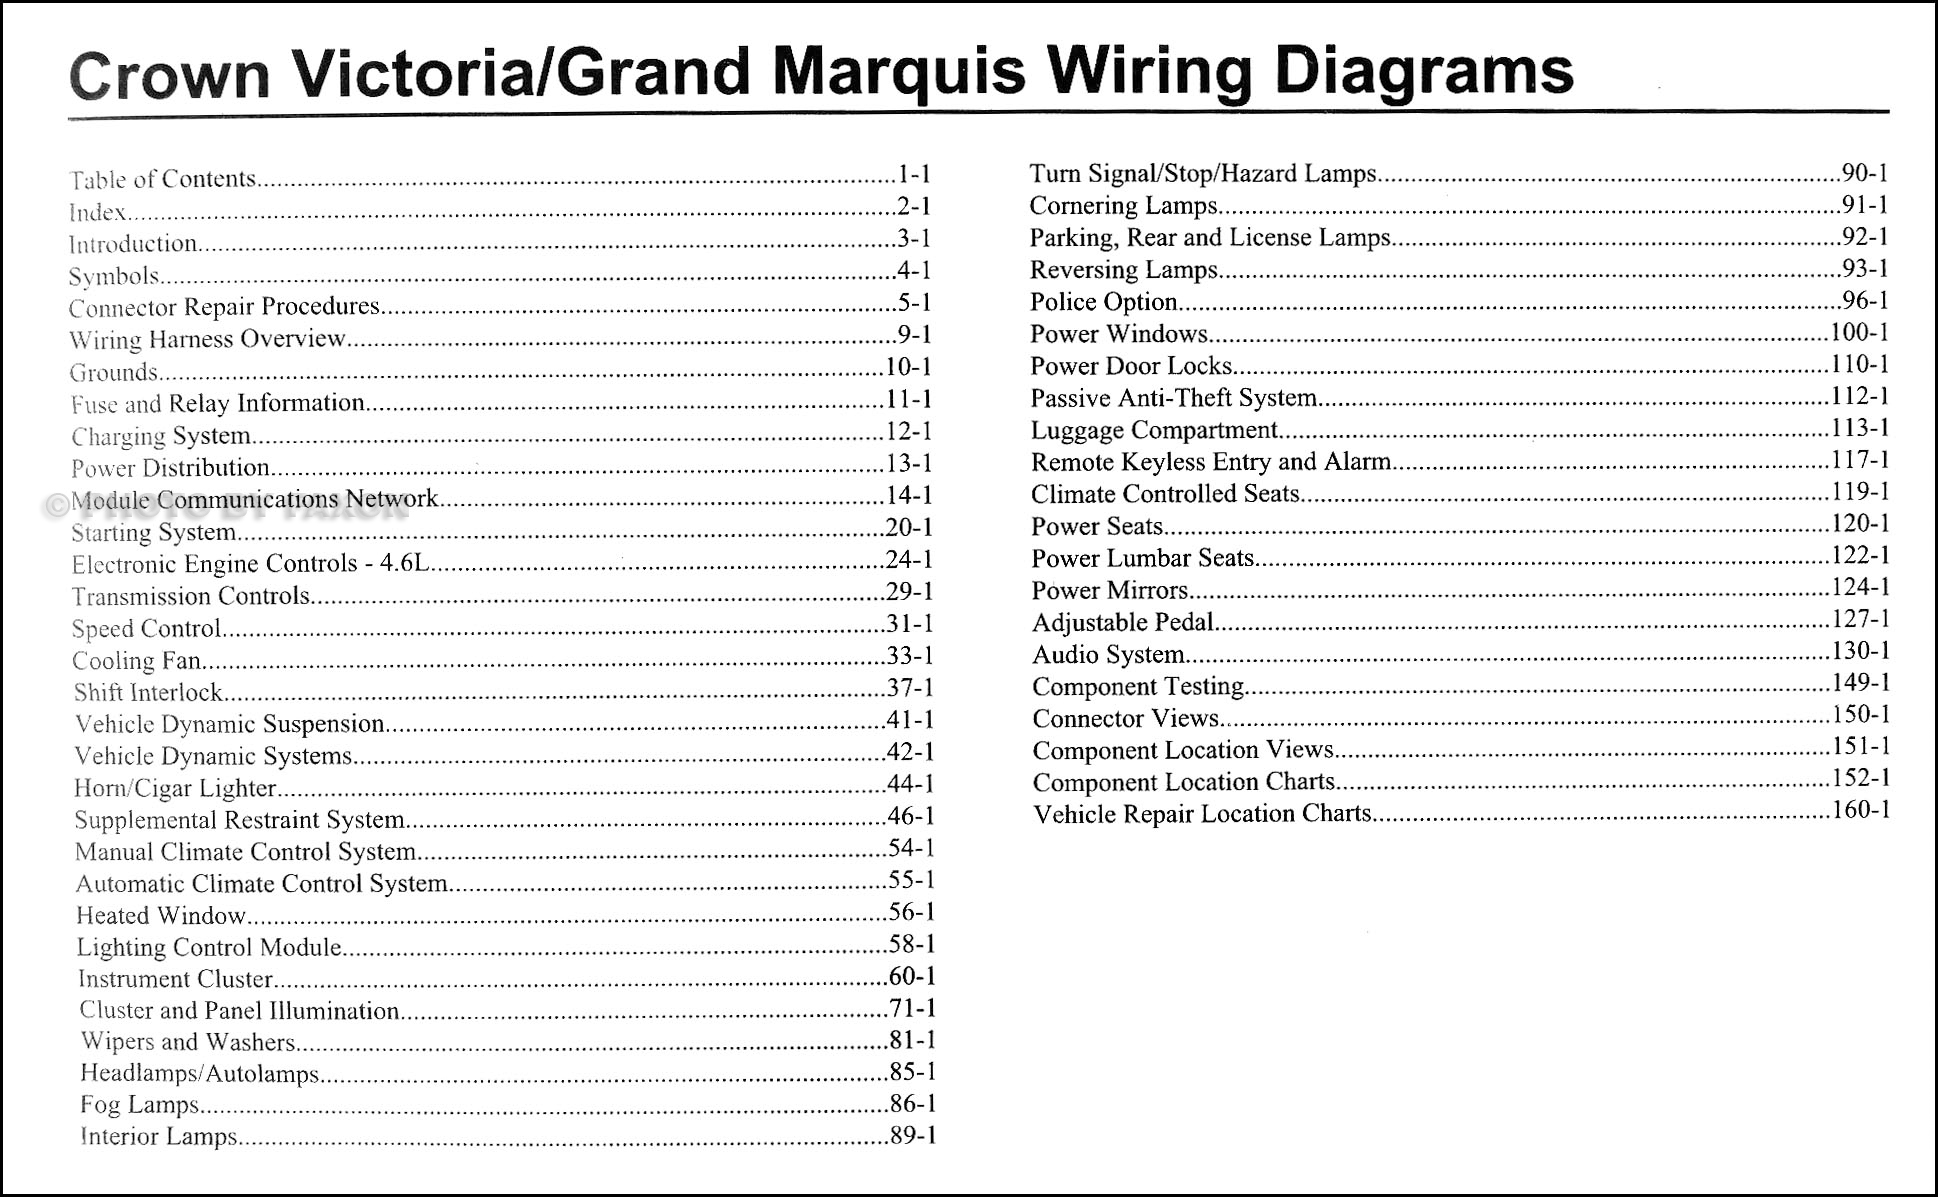 grand marquis original wiring diagram manual · table of contents